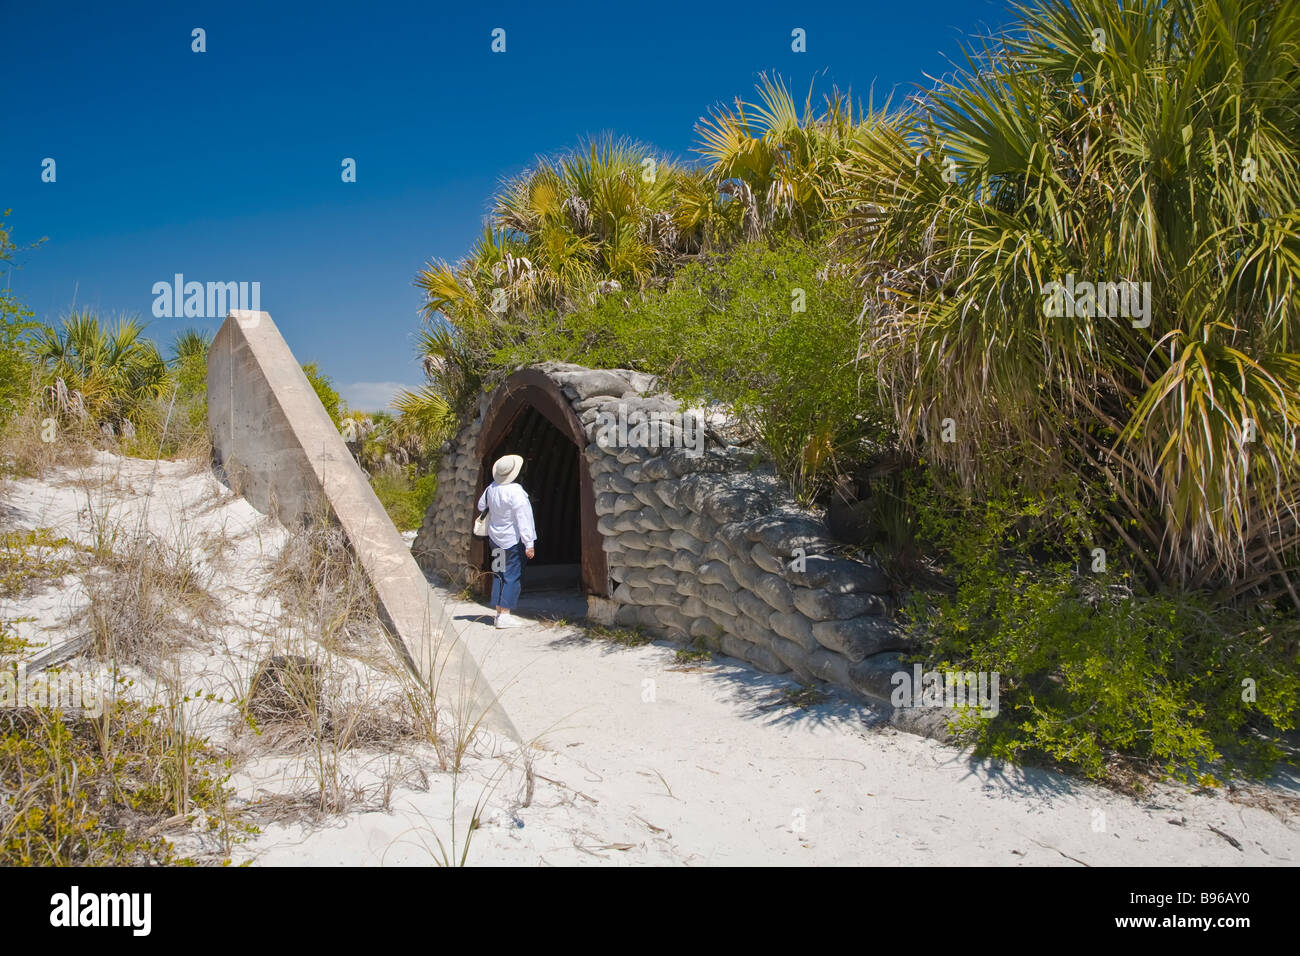 Fort Dade military bunker in Egmont Key State Park at the entrance to Tampa Bay on the Gulf Of Mexico in Florida - Stock Image